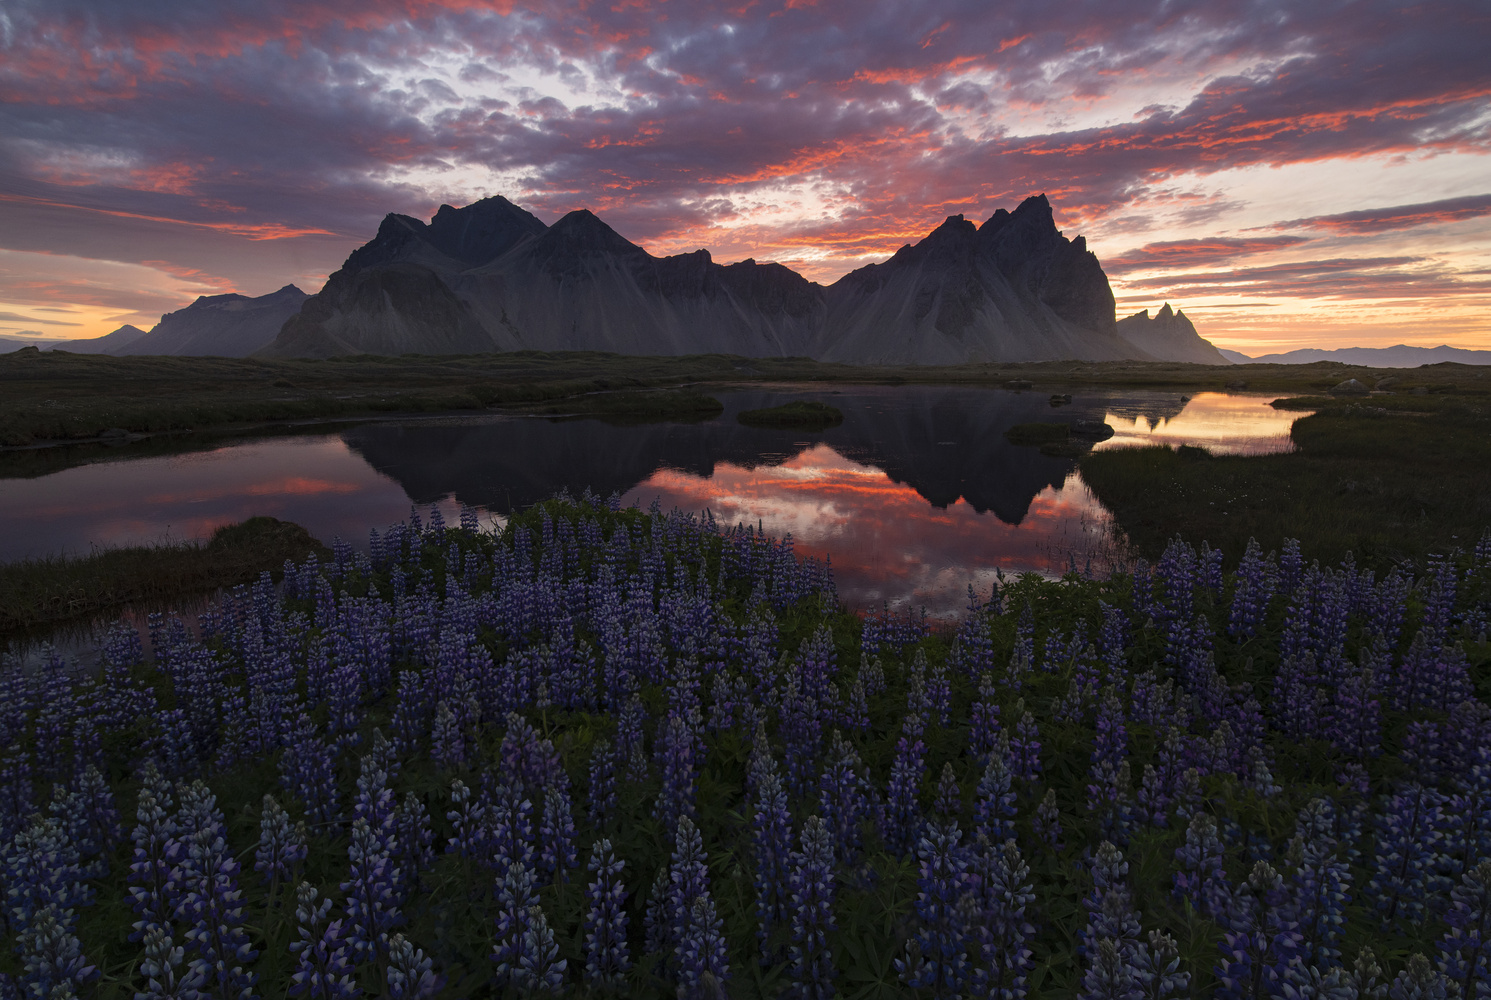 The Midnight Sun by Micah Roemmling